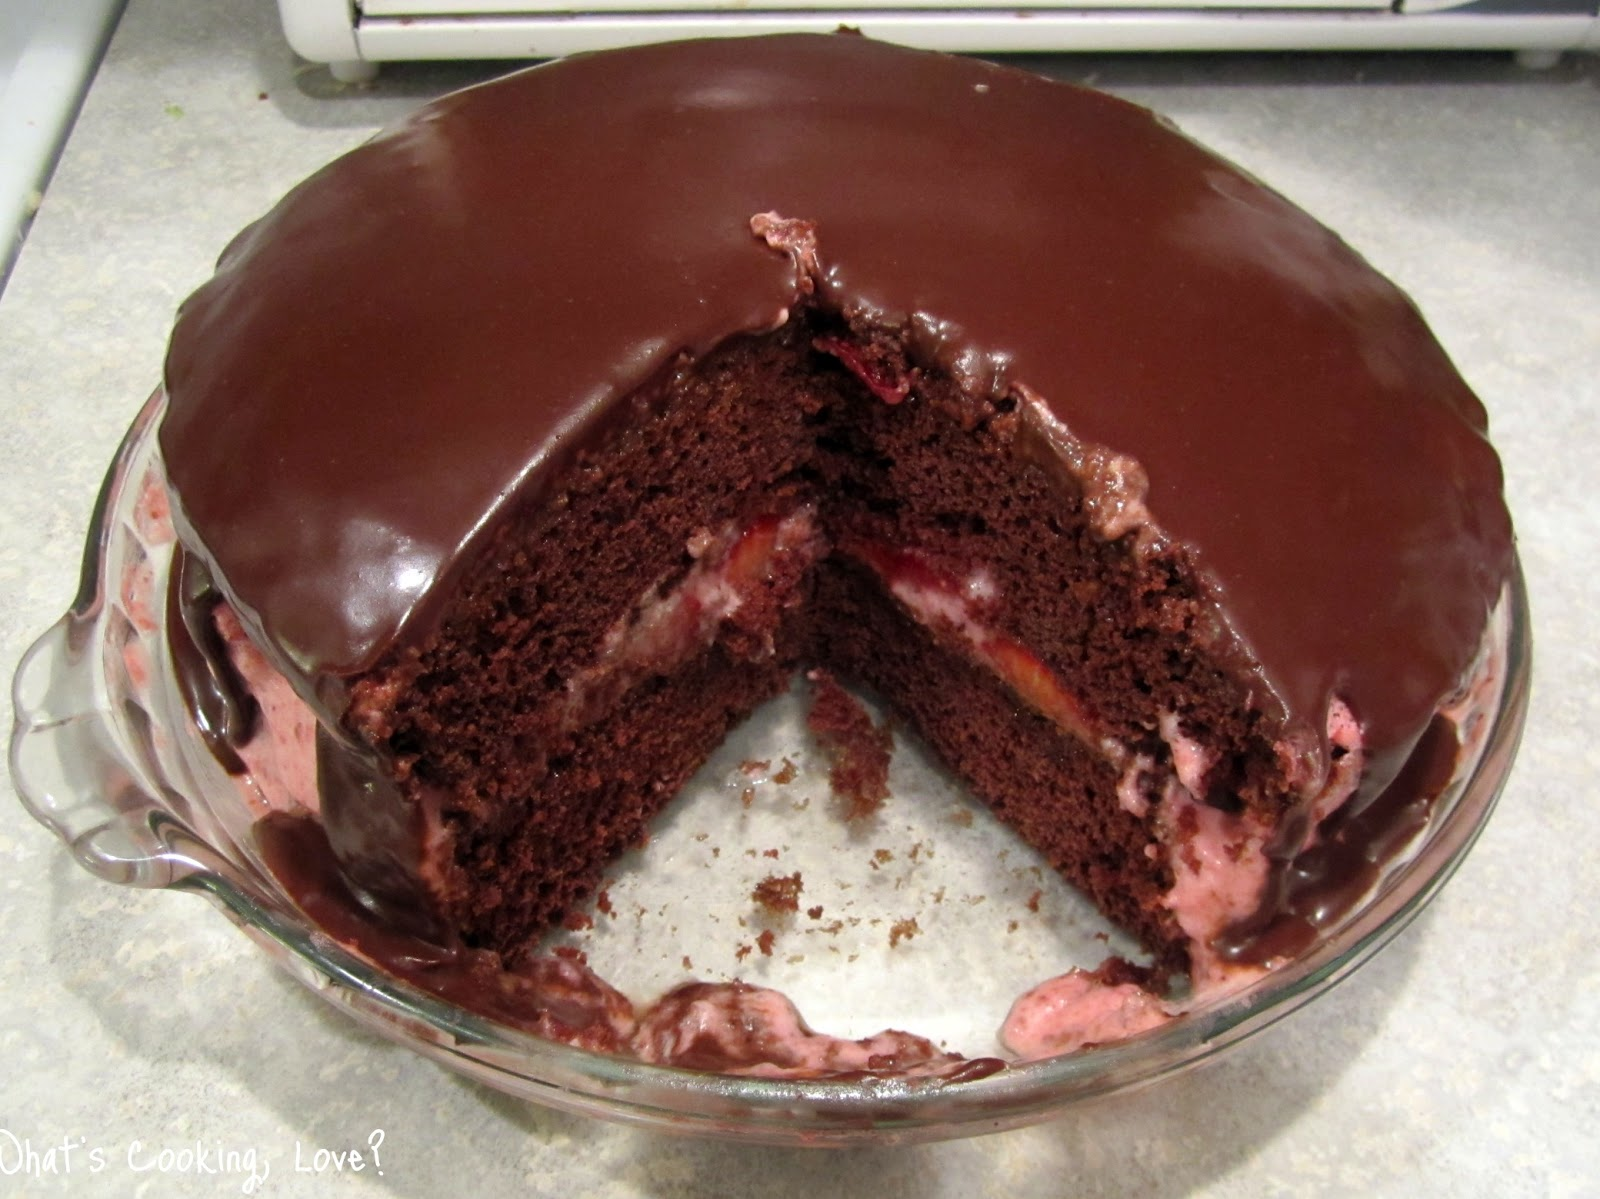 Chocolate mousse filling scene 5